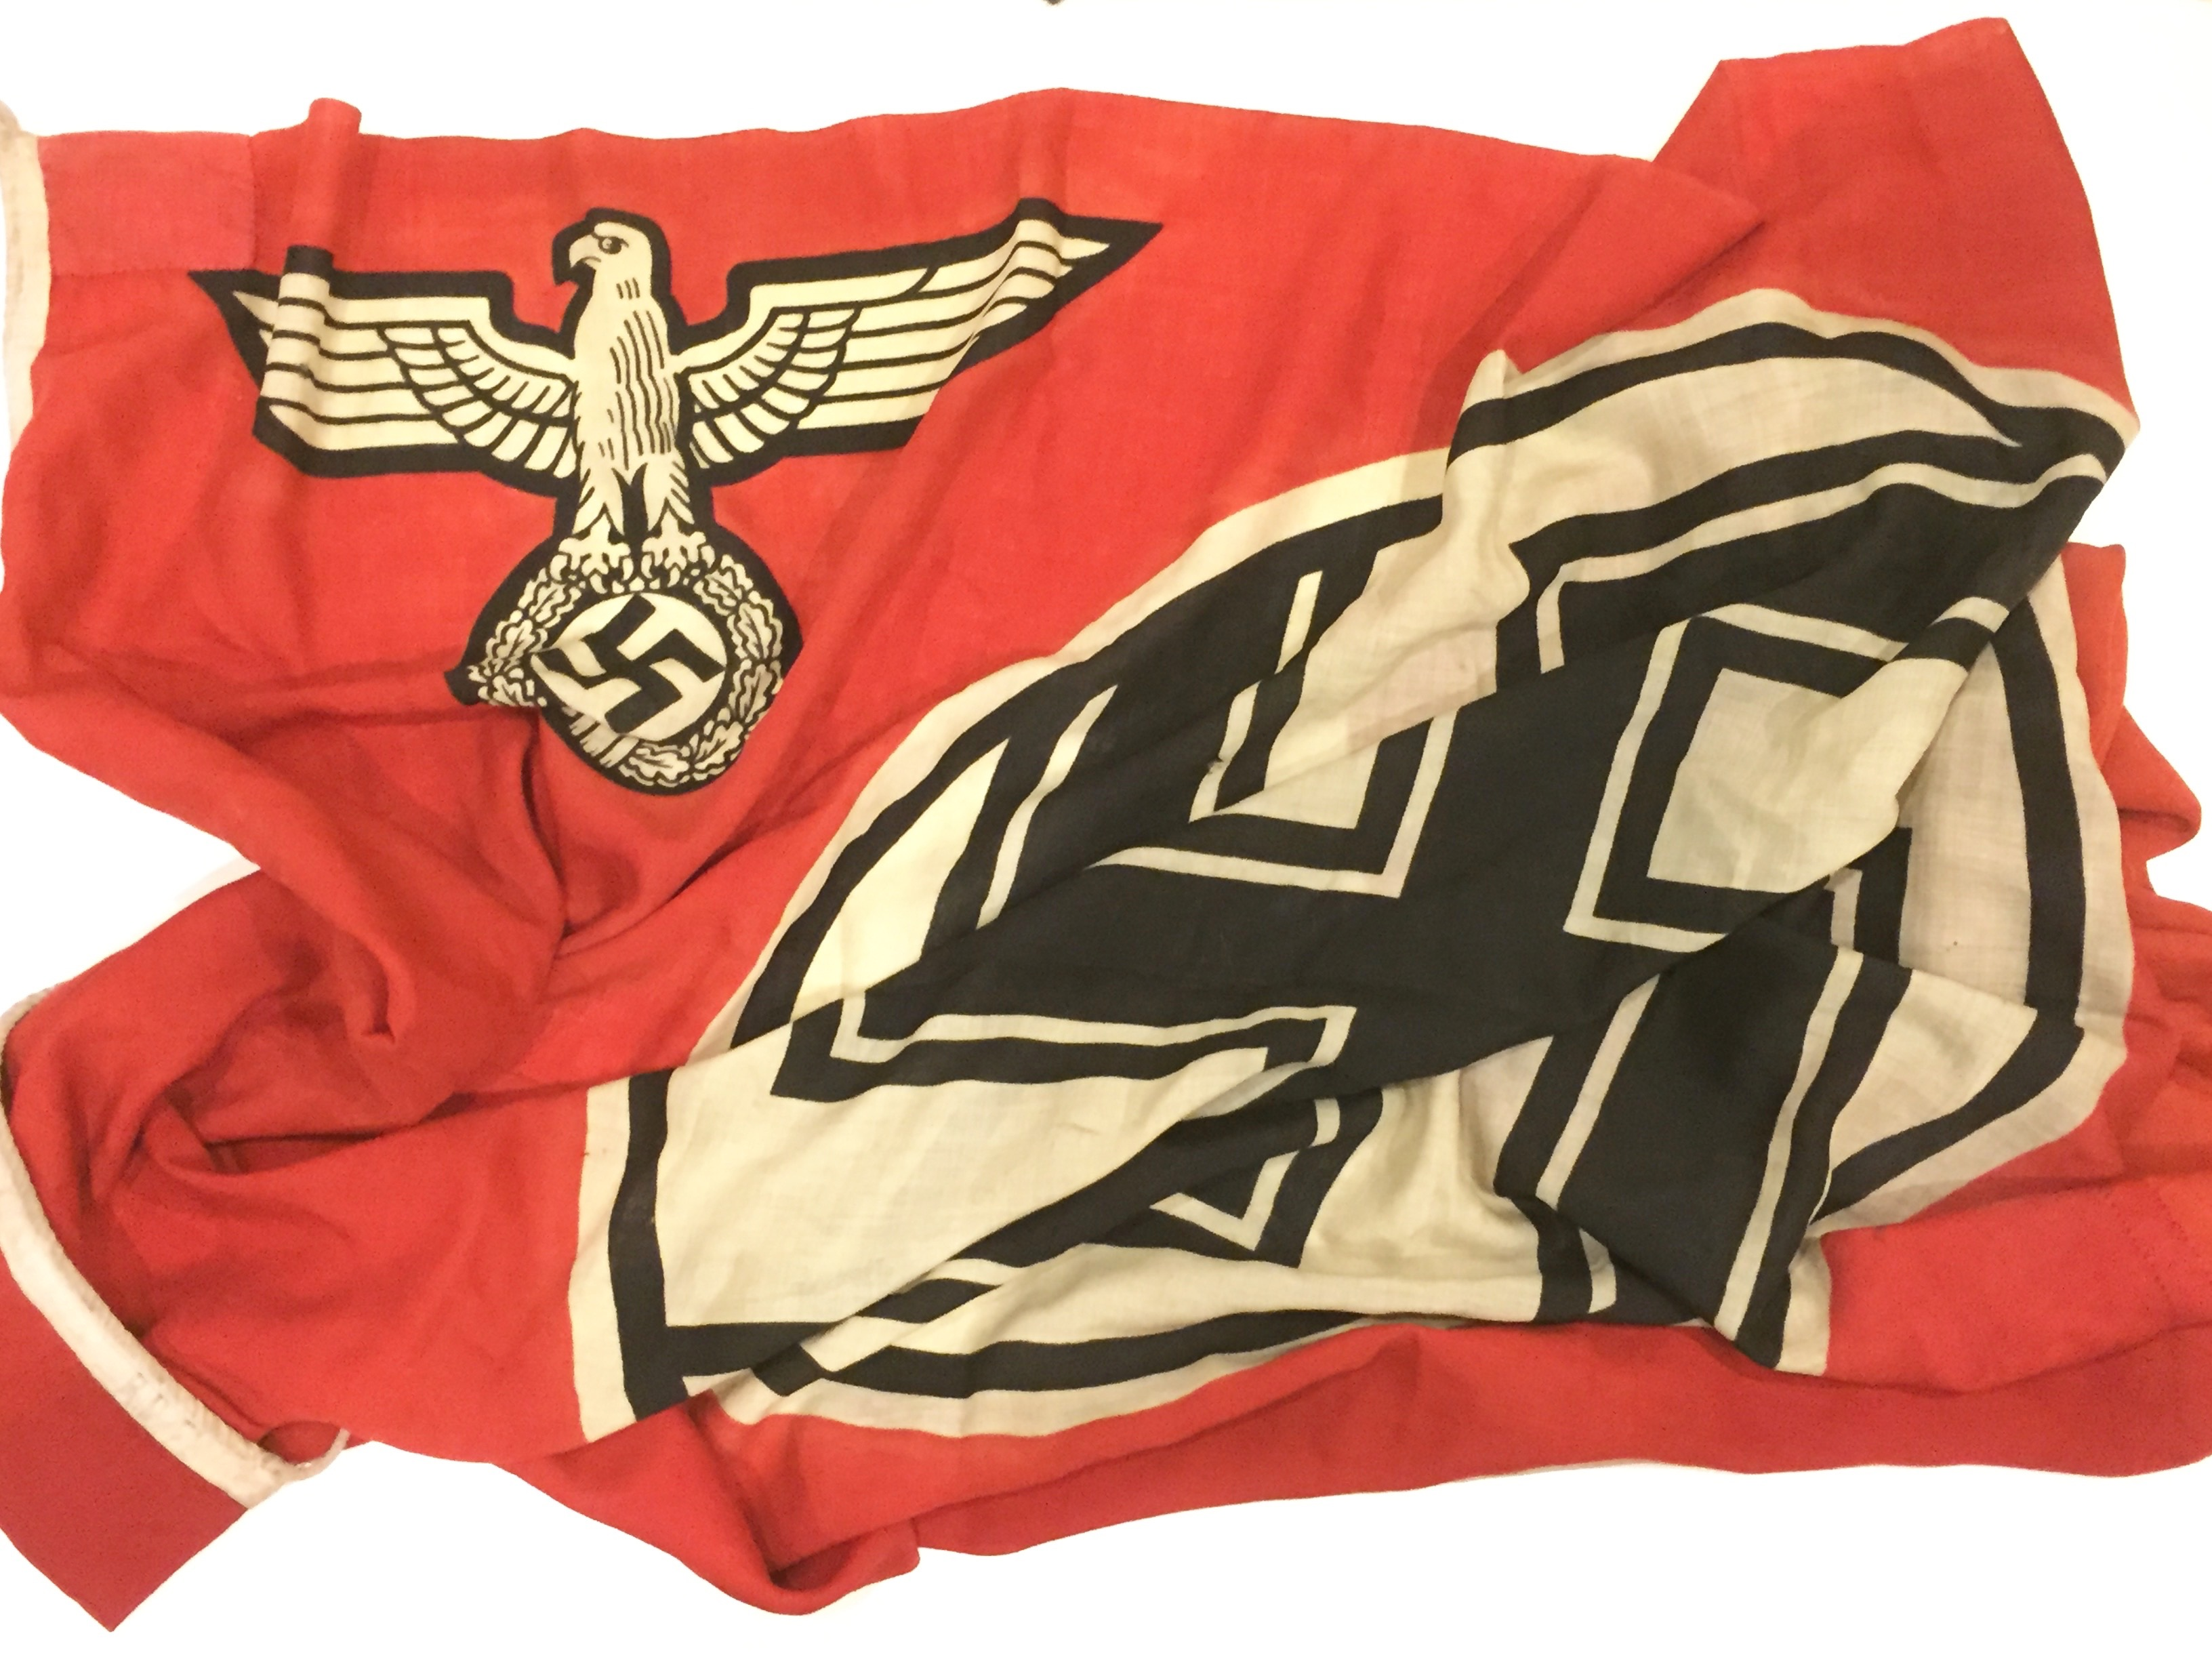 german third reich ww2 reich service flag a good example of red